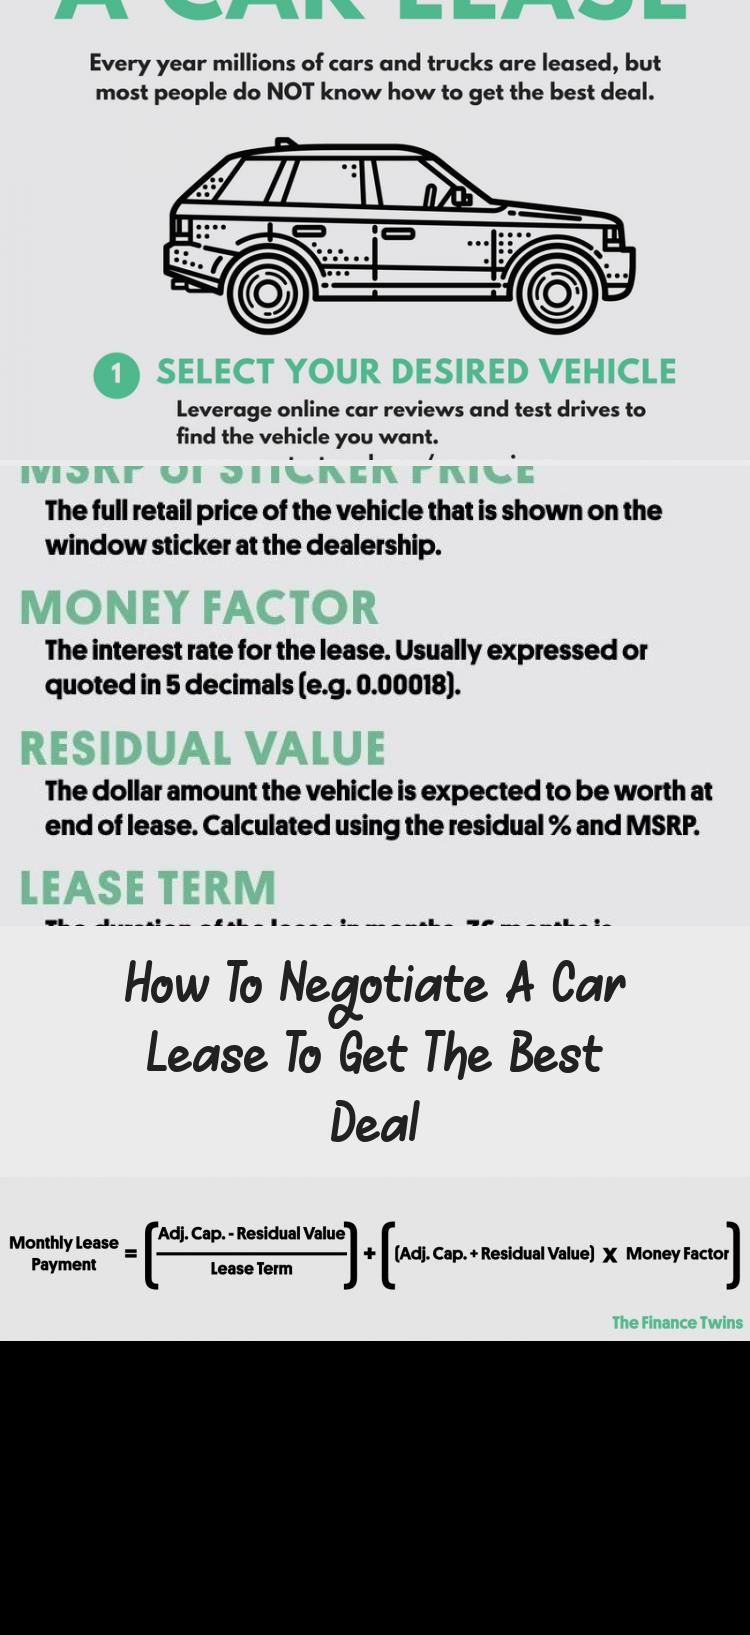 How To Negotiate A Car Lease To Get The Best Deal Car In 2020 Car Lease Best Cars On Gas Lease